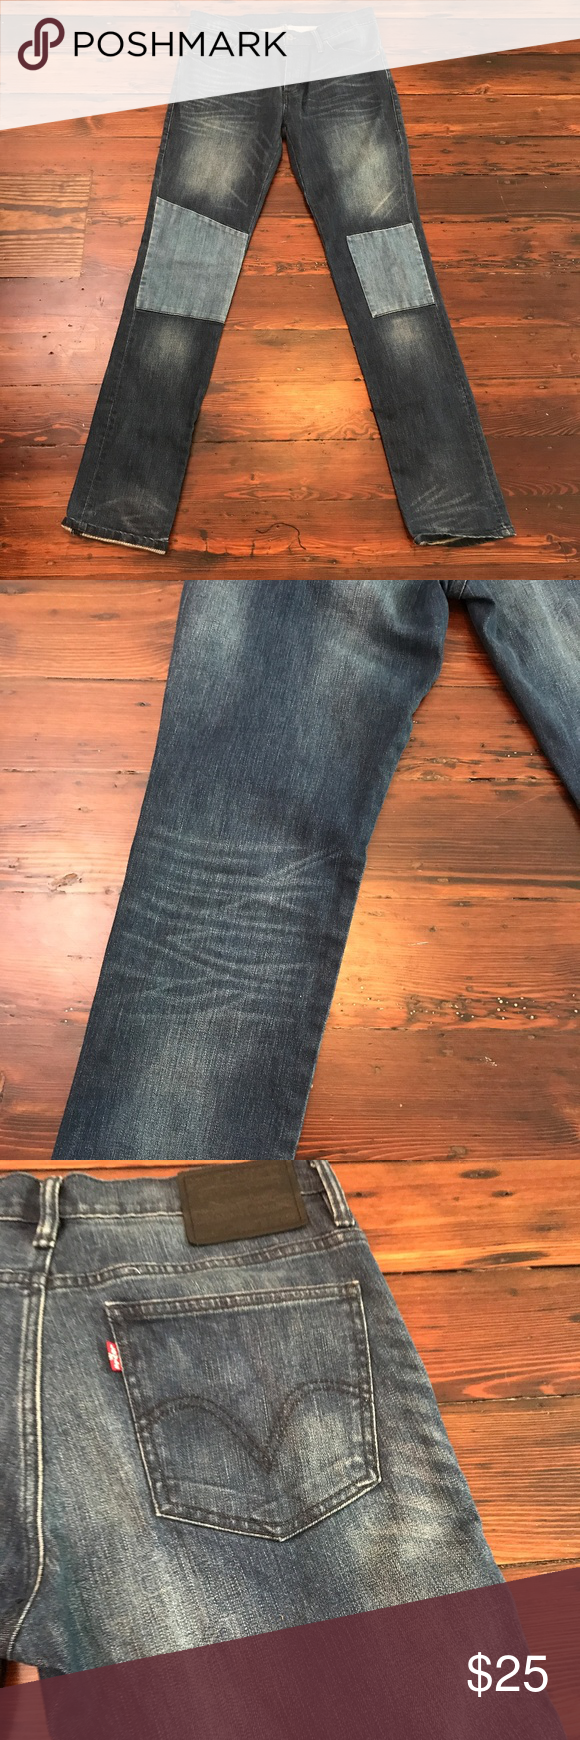 Levi's 510 Denim Jeans Super Skinny Fashion Dark In excellent used condition.  These were in storage and are like new!  Lovely dark denim with lots of whiskering and sandblast detailing. Feature color block patches of lighter denim on the knees. Levi's Jeans Skinny